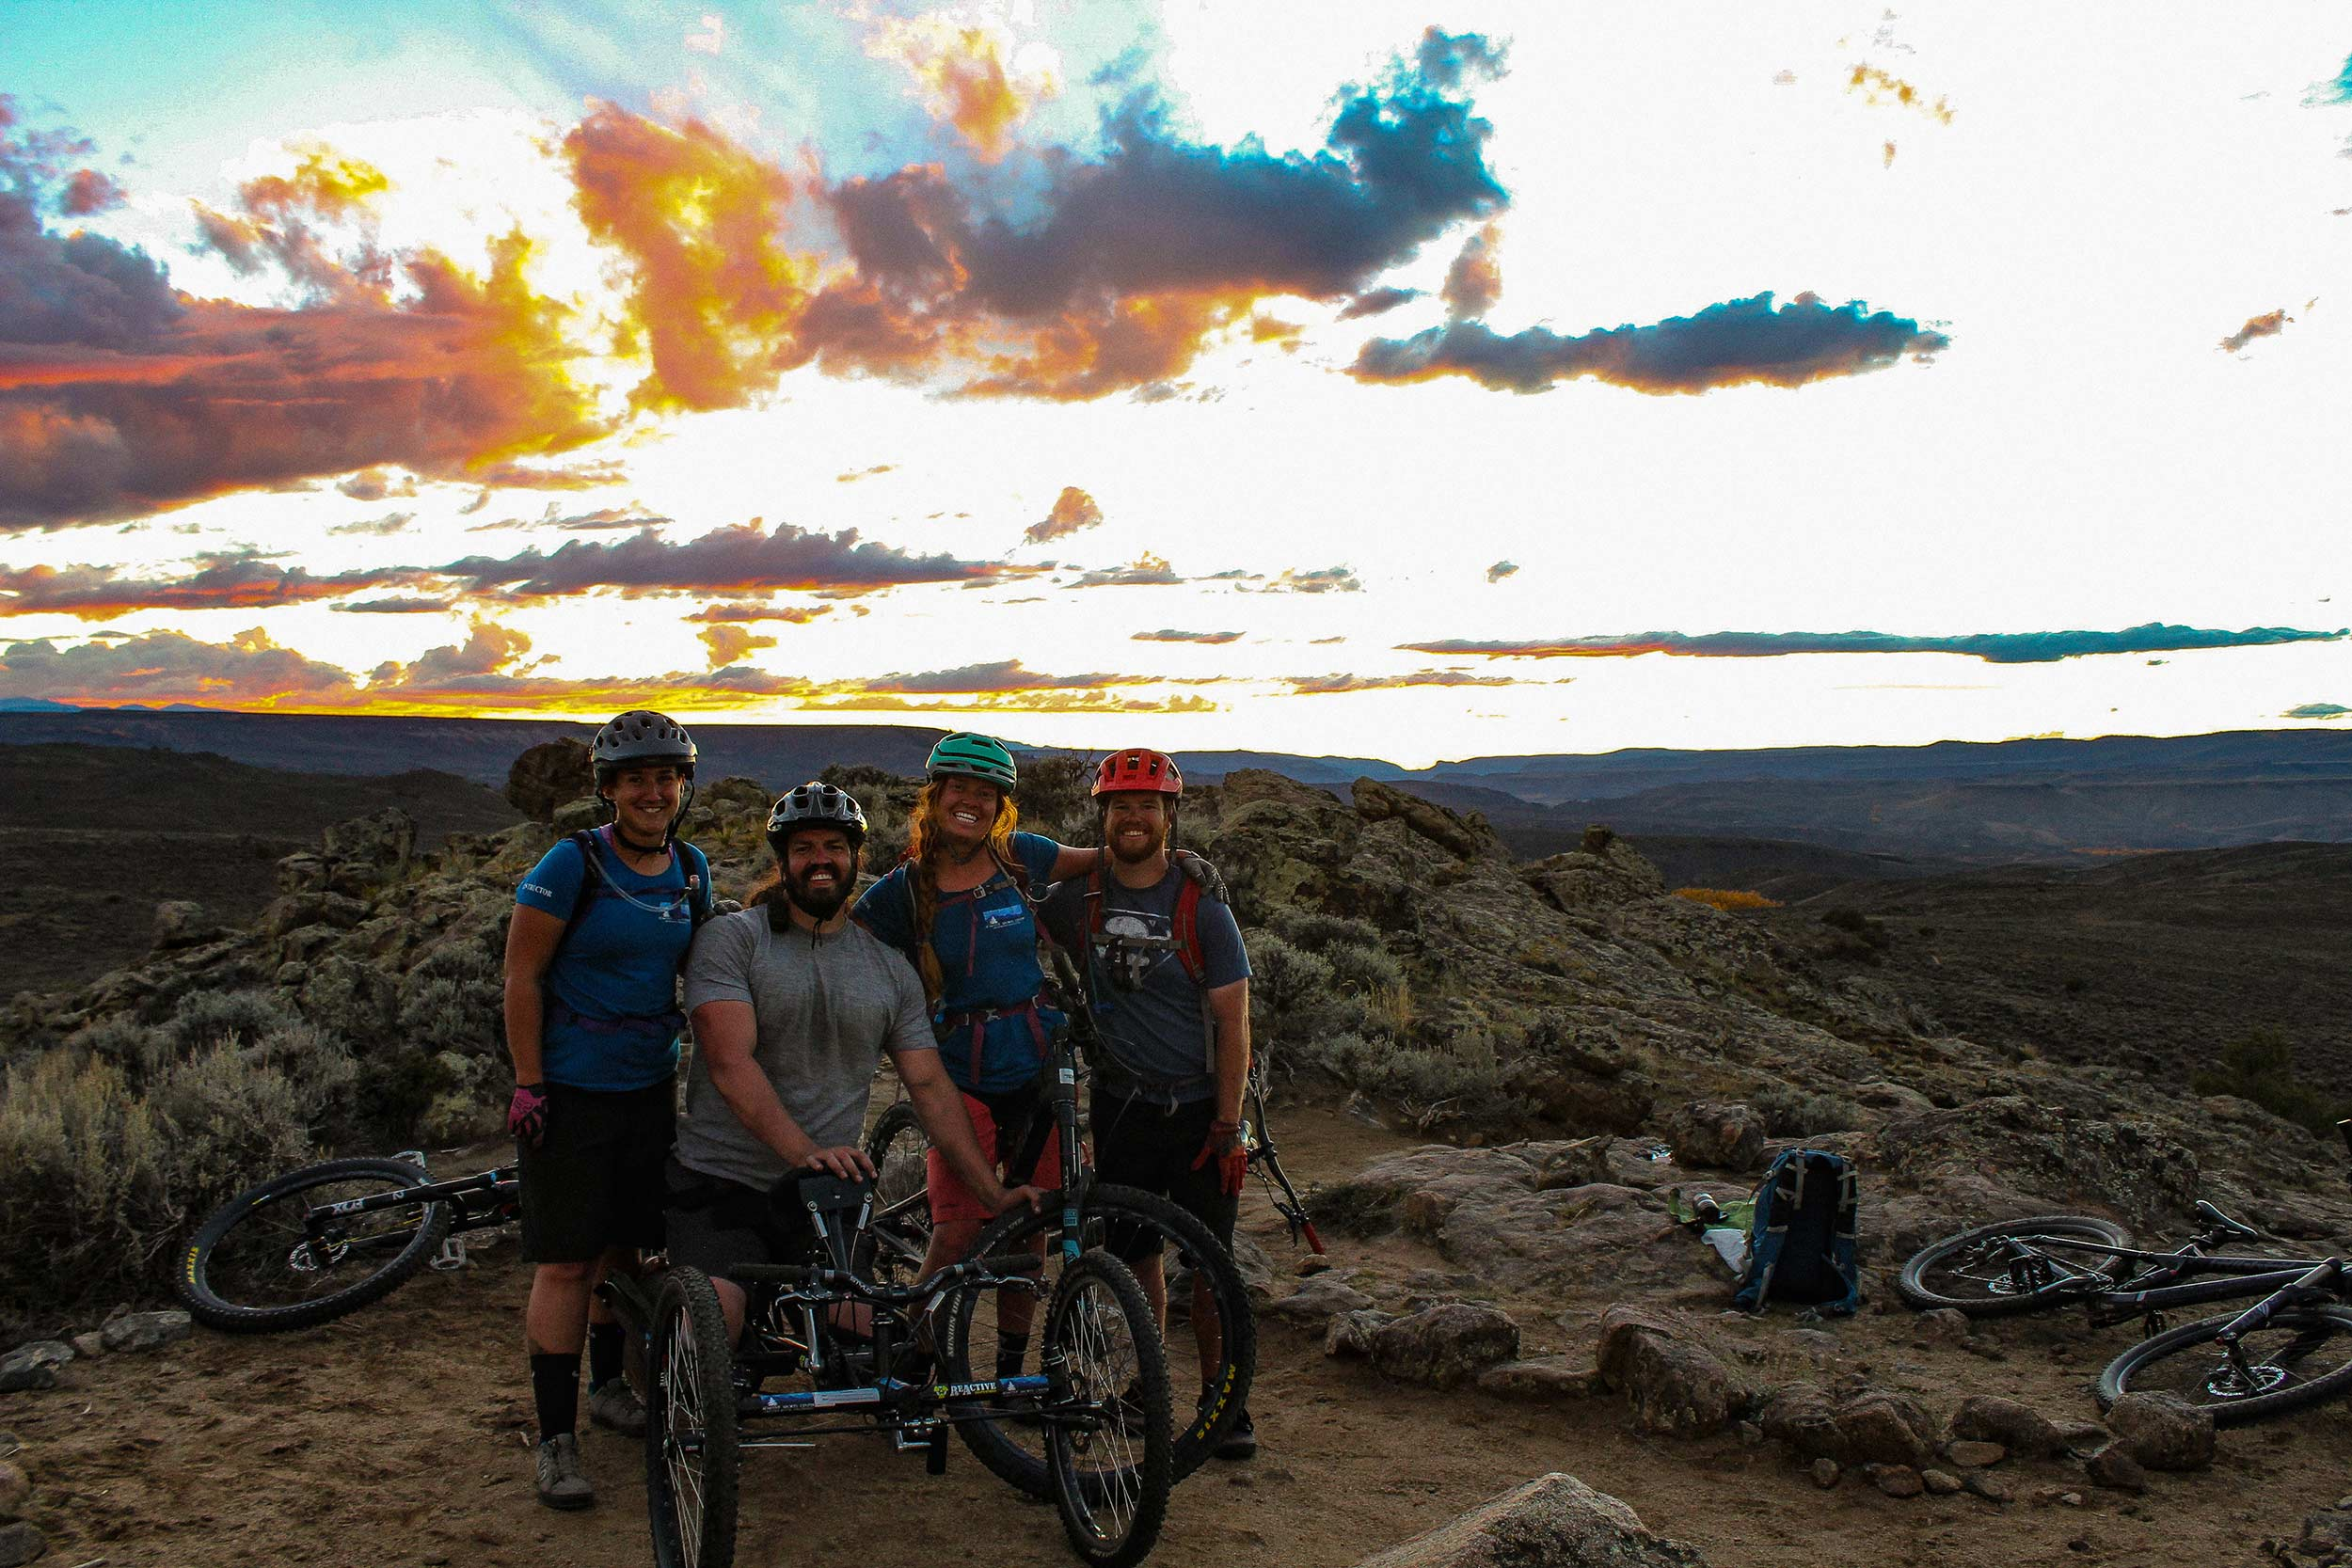 bikers-with-sunset.jpg